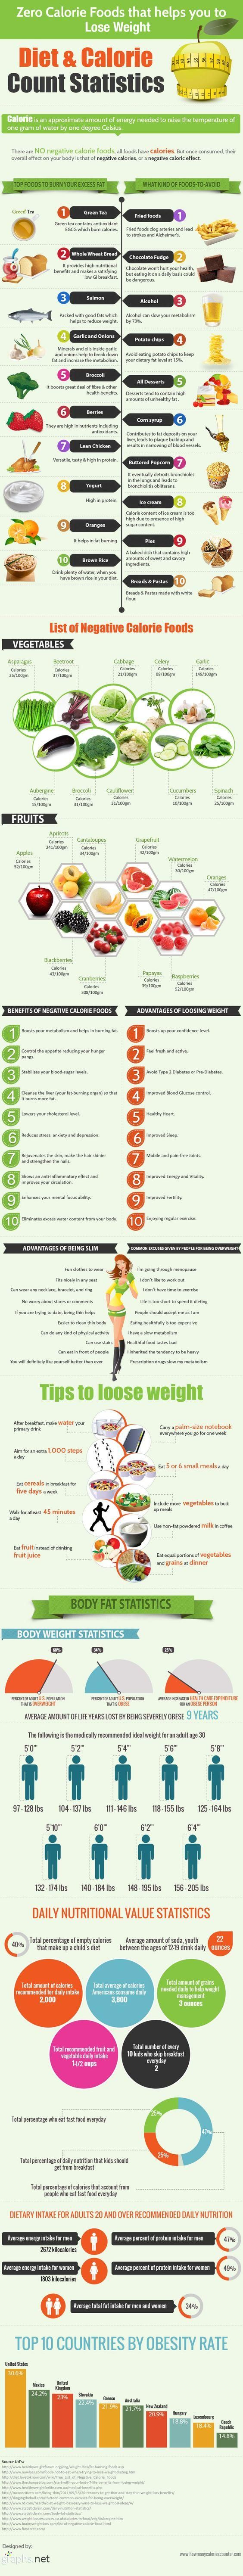 A Simple 3step Plan To Lose Weight Fast, Along With Numerous Effective  Weight